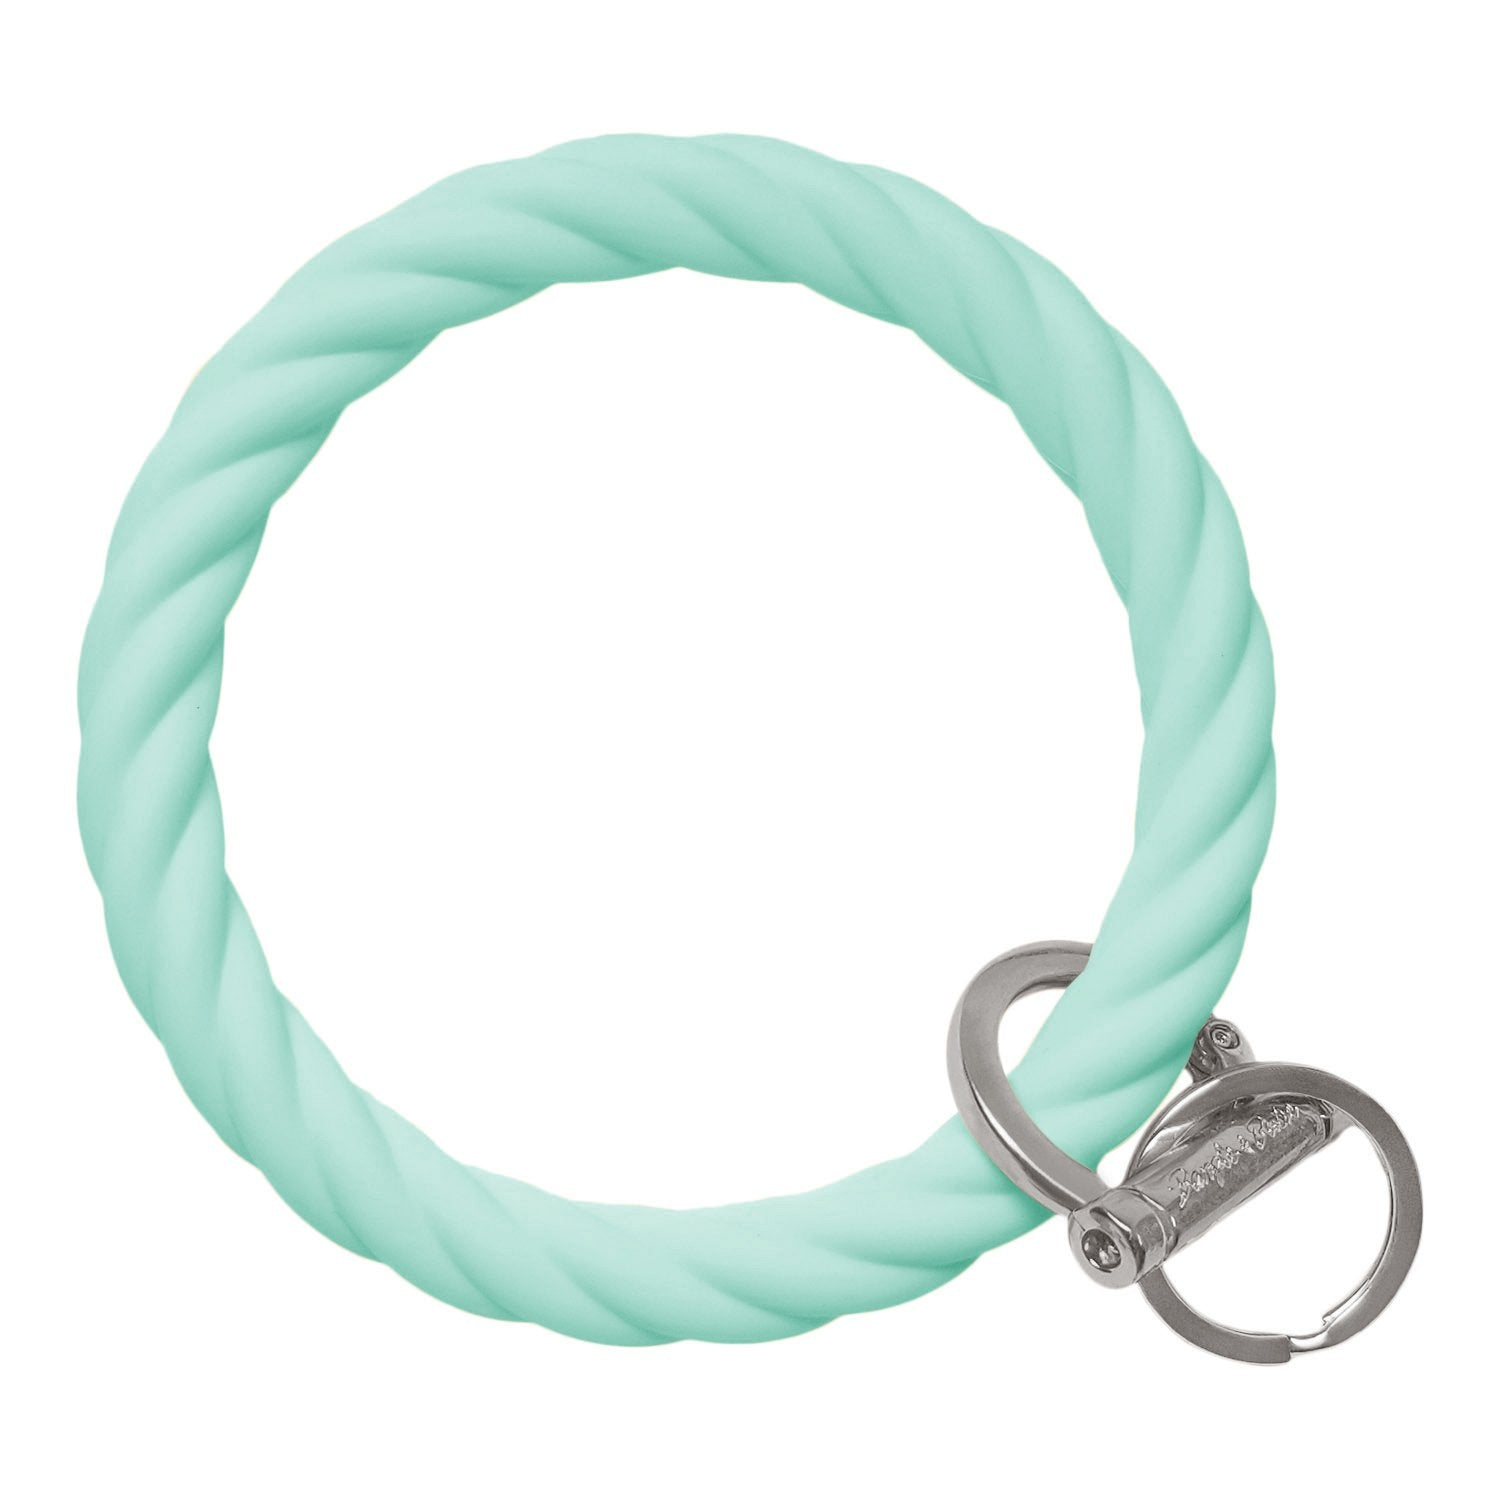 Bangle Bracelet Key Ring - TWIST